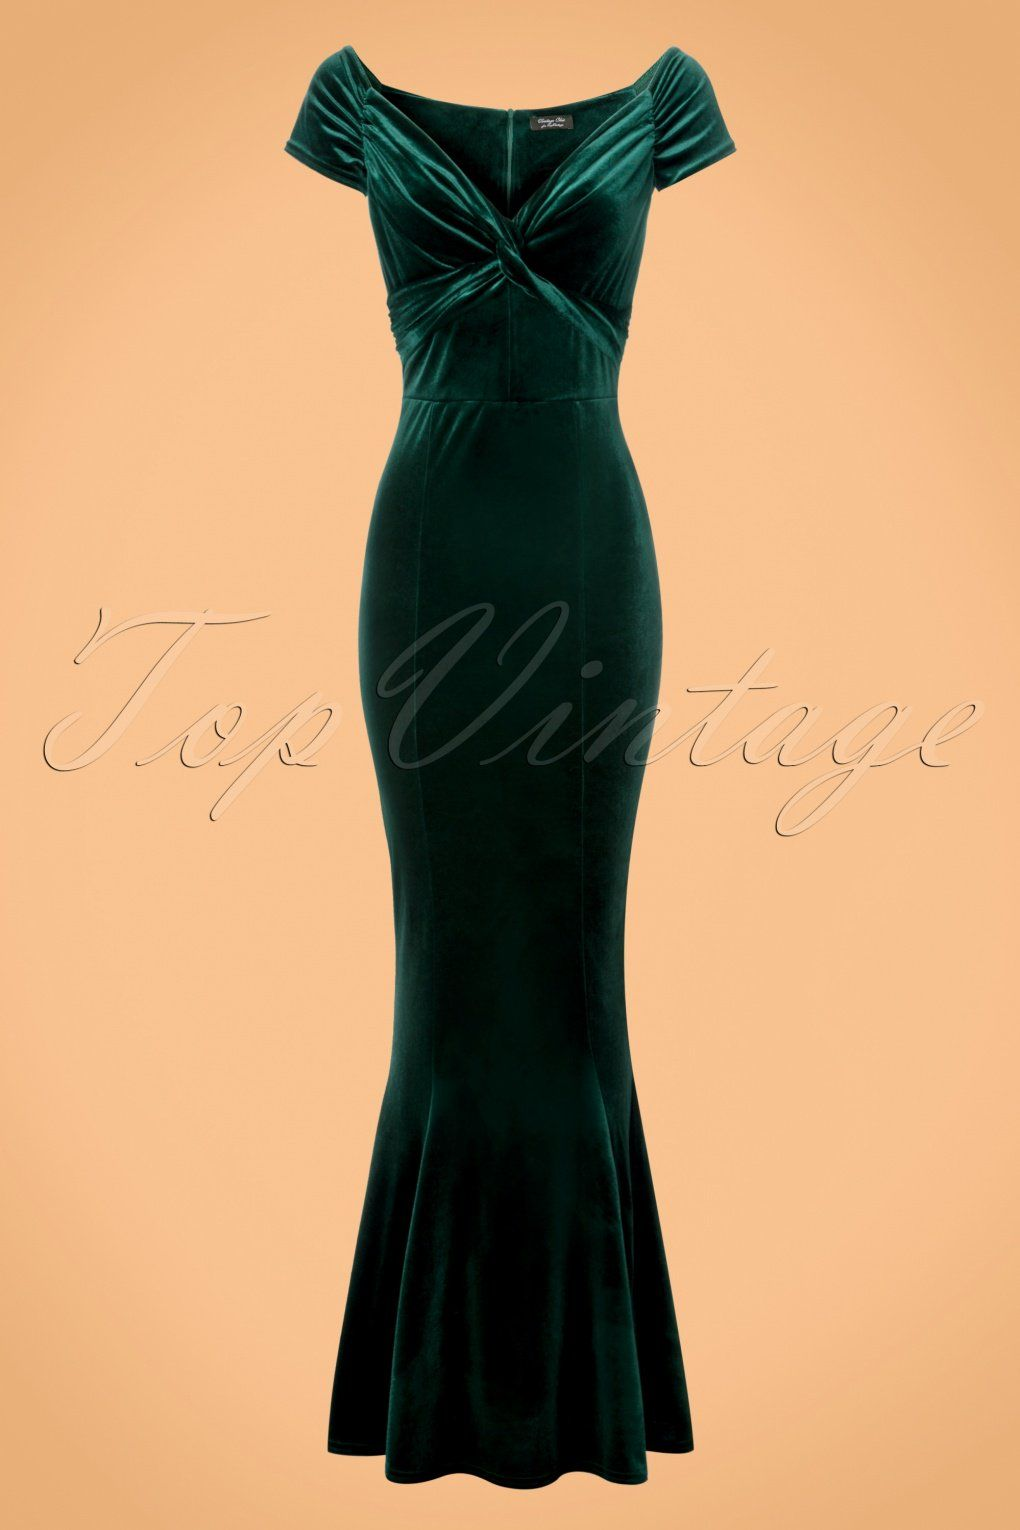 Let This 50s Glenda Velvet Maxi Dress In Green Hug Your Curves Who Is That Lady In Velvet You Of Cours Vintage Inspired Dresses Maxi Dress Green Dresses [ 1530 x 1020 Pixel ]